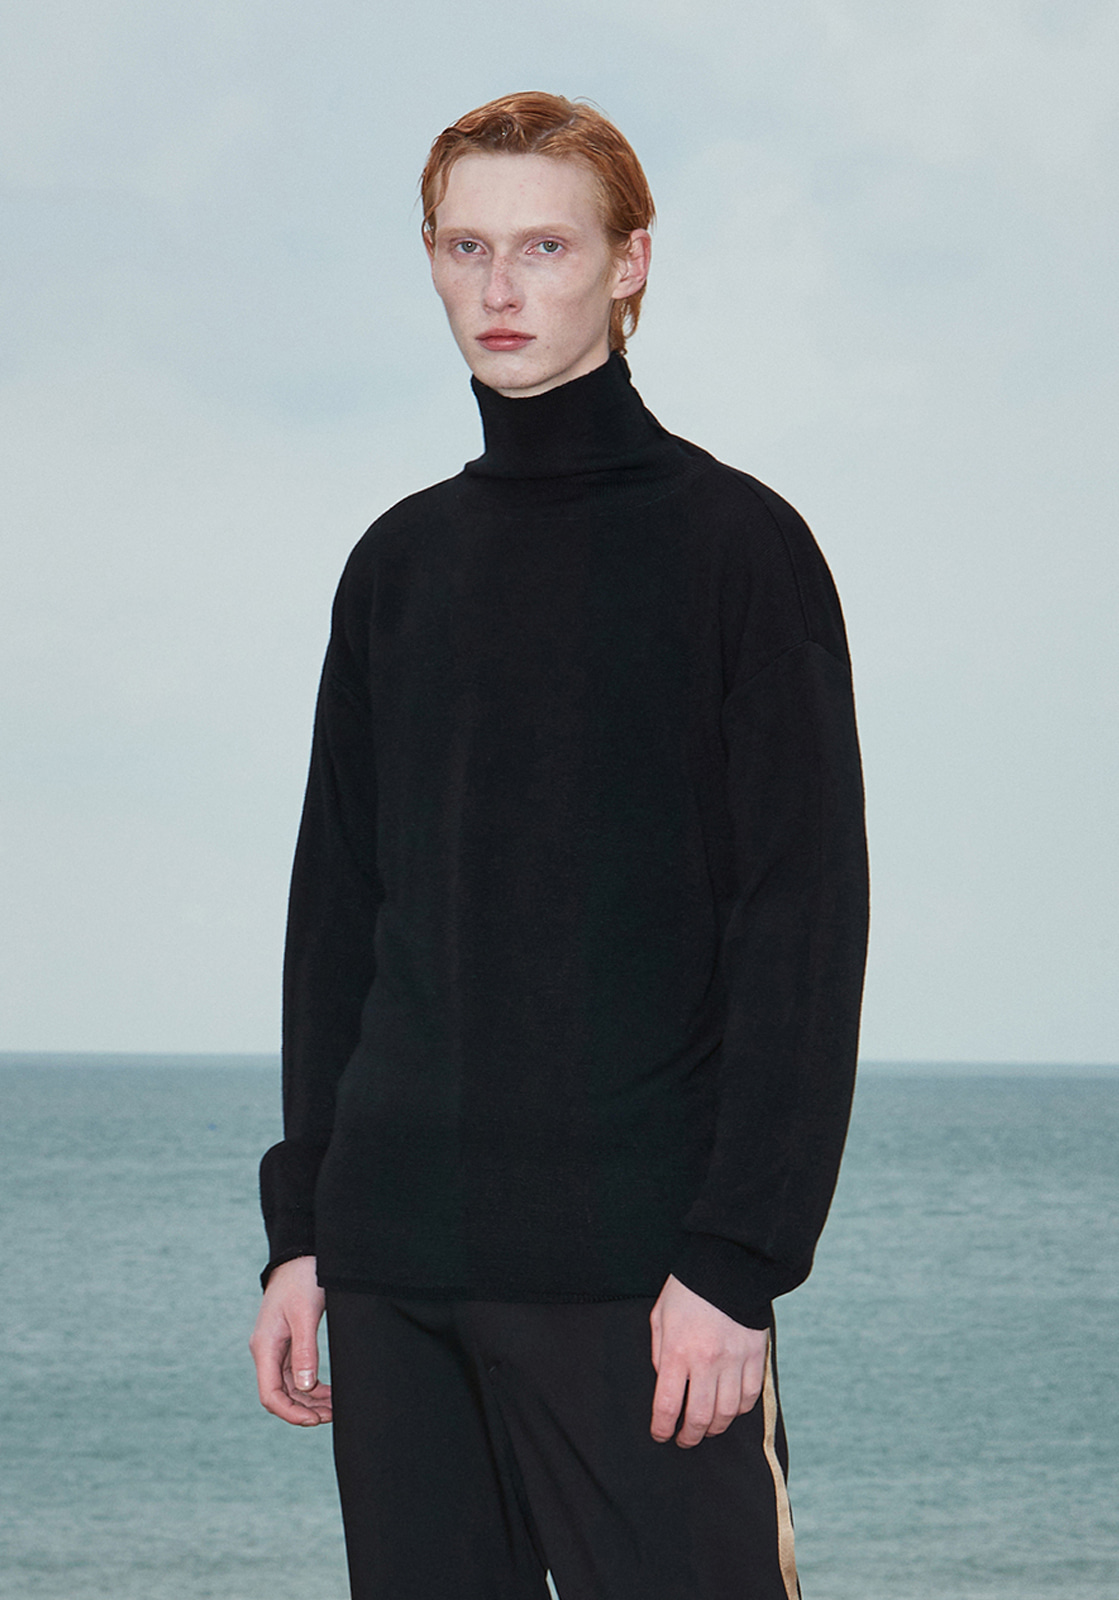 V574 BASIC OVERSIZE TURTLENECK KNIT  BLACK